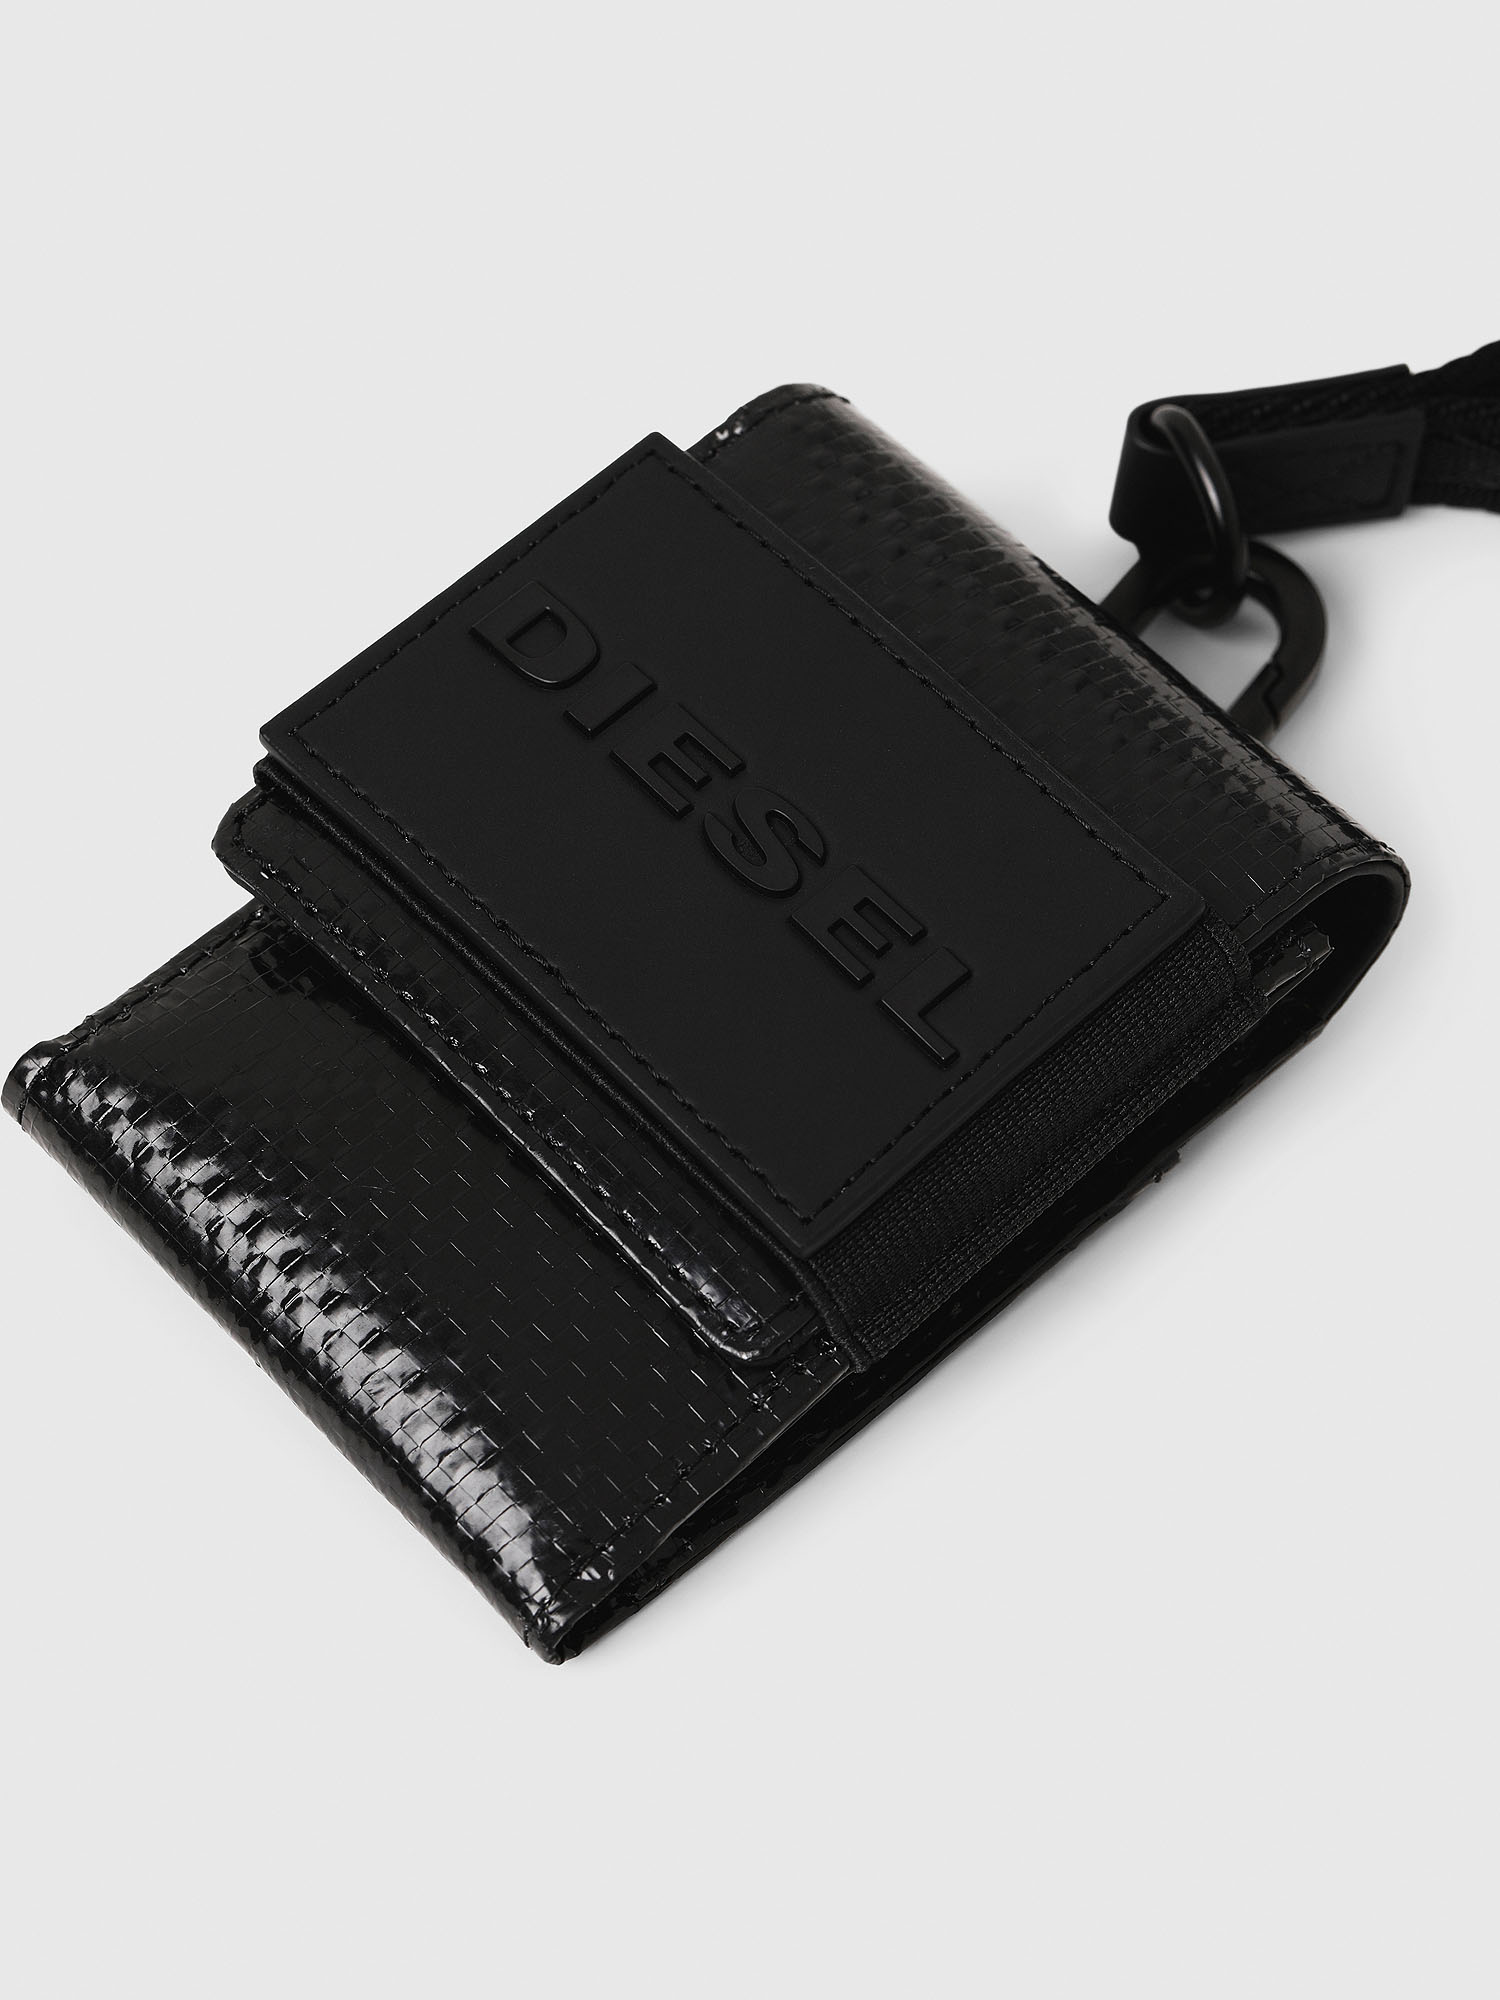 Diesel - LOSSO,  - Small Wallets - Image 3